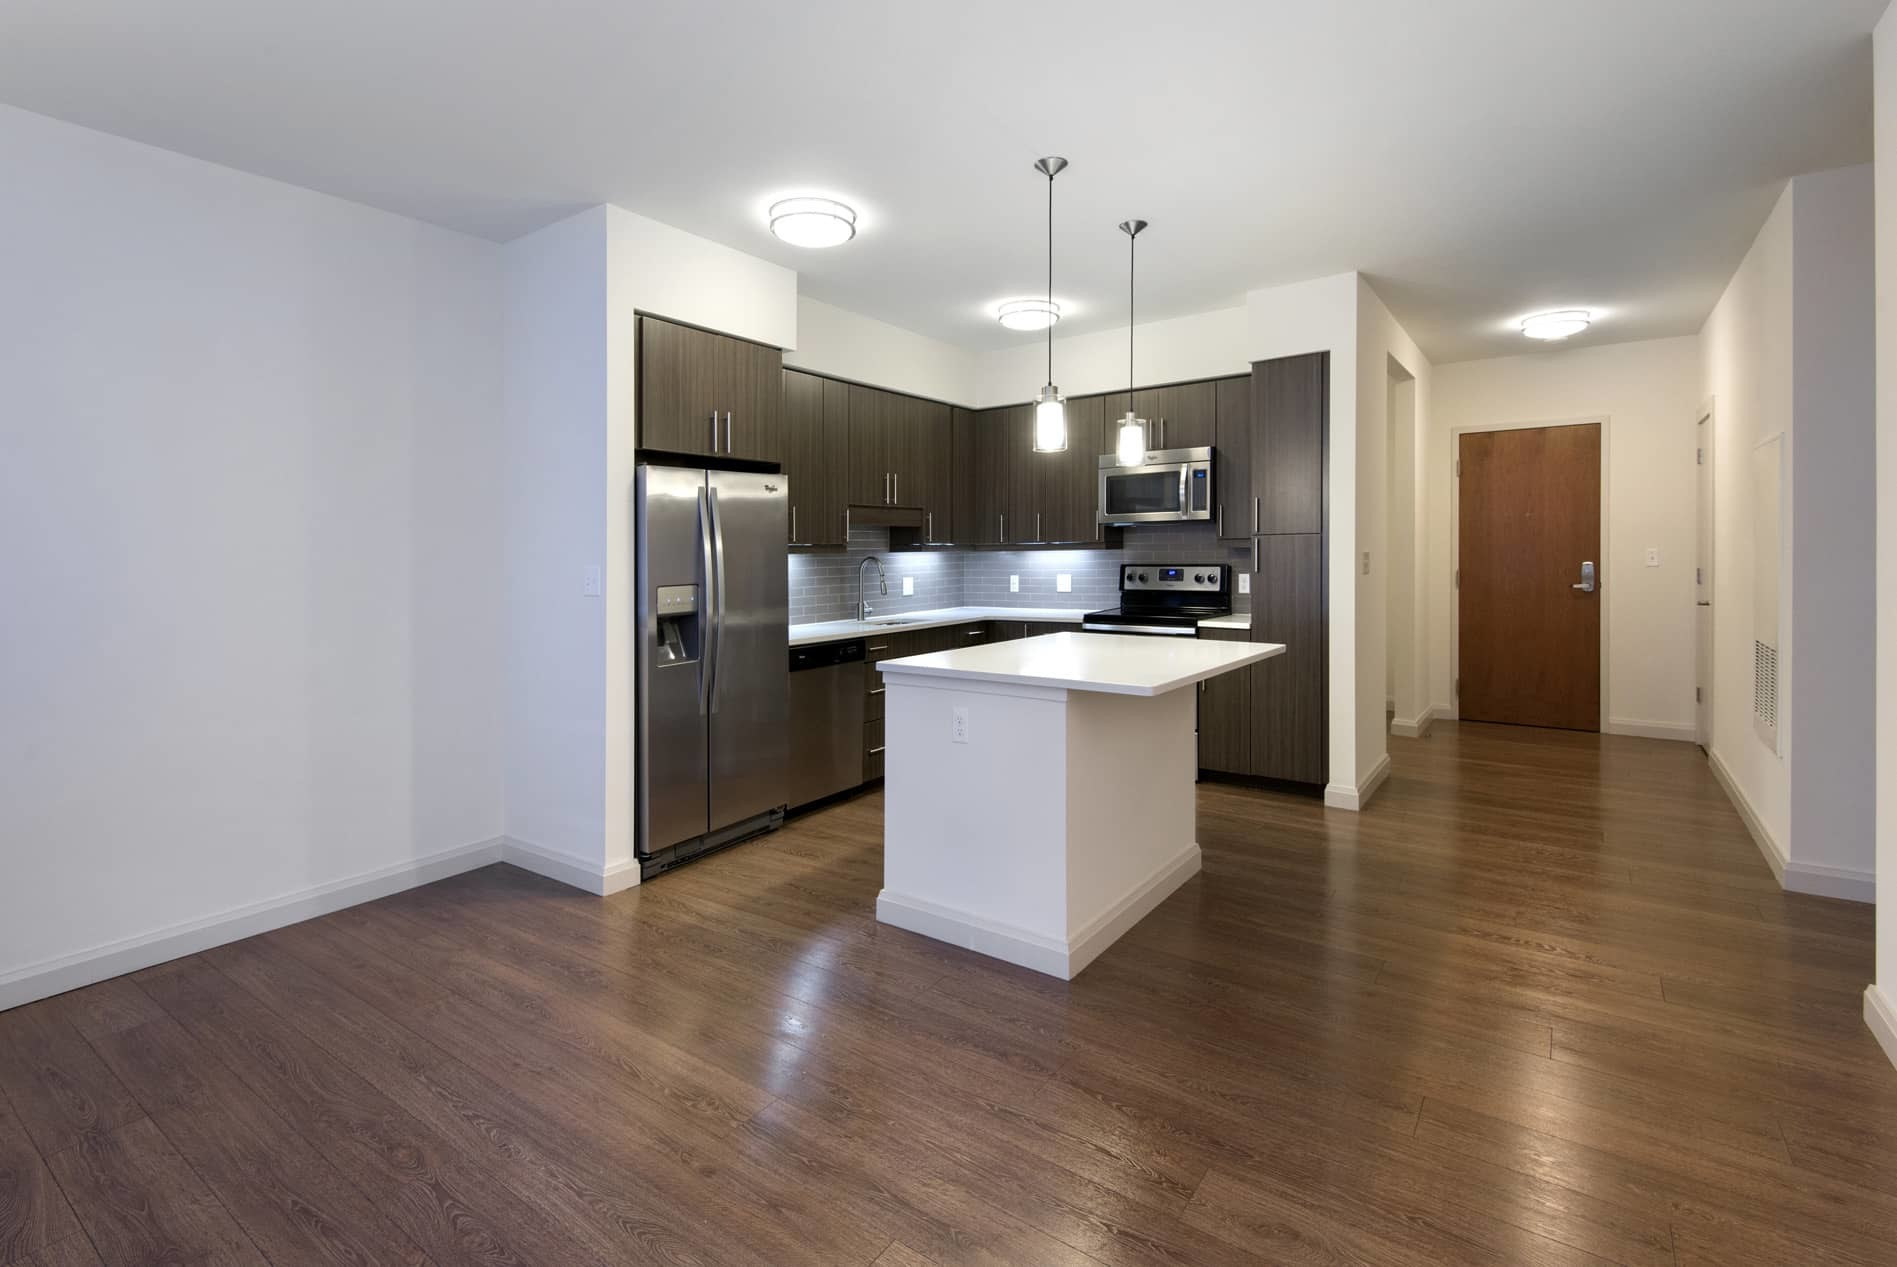 1 Bed, 1 Bath apartment in Waltham for $2,884